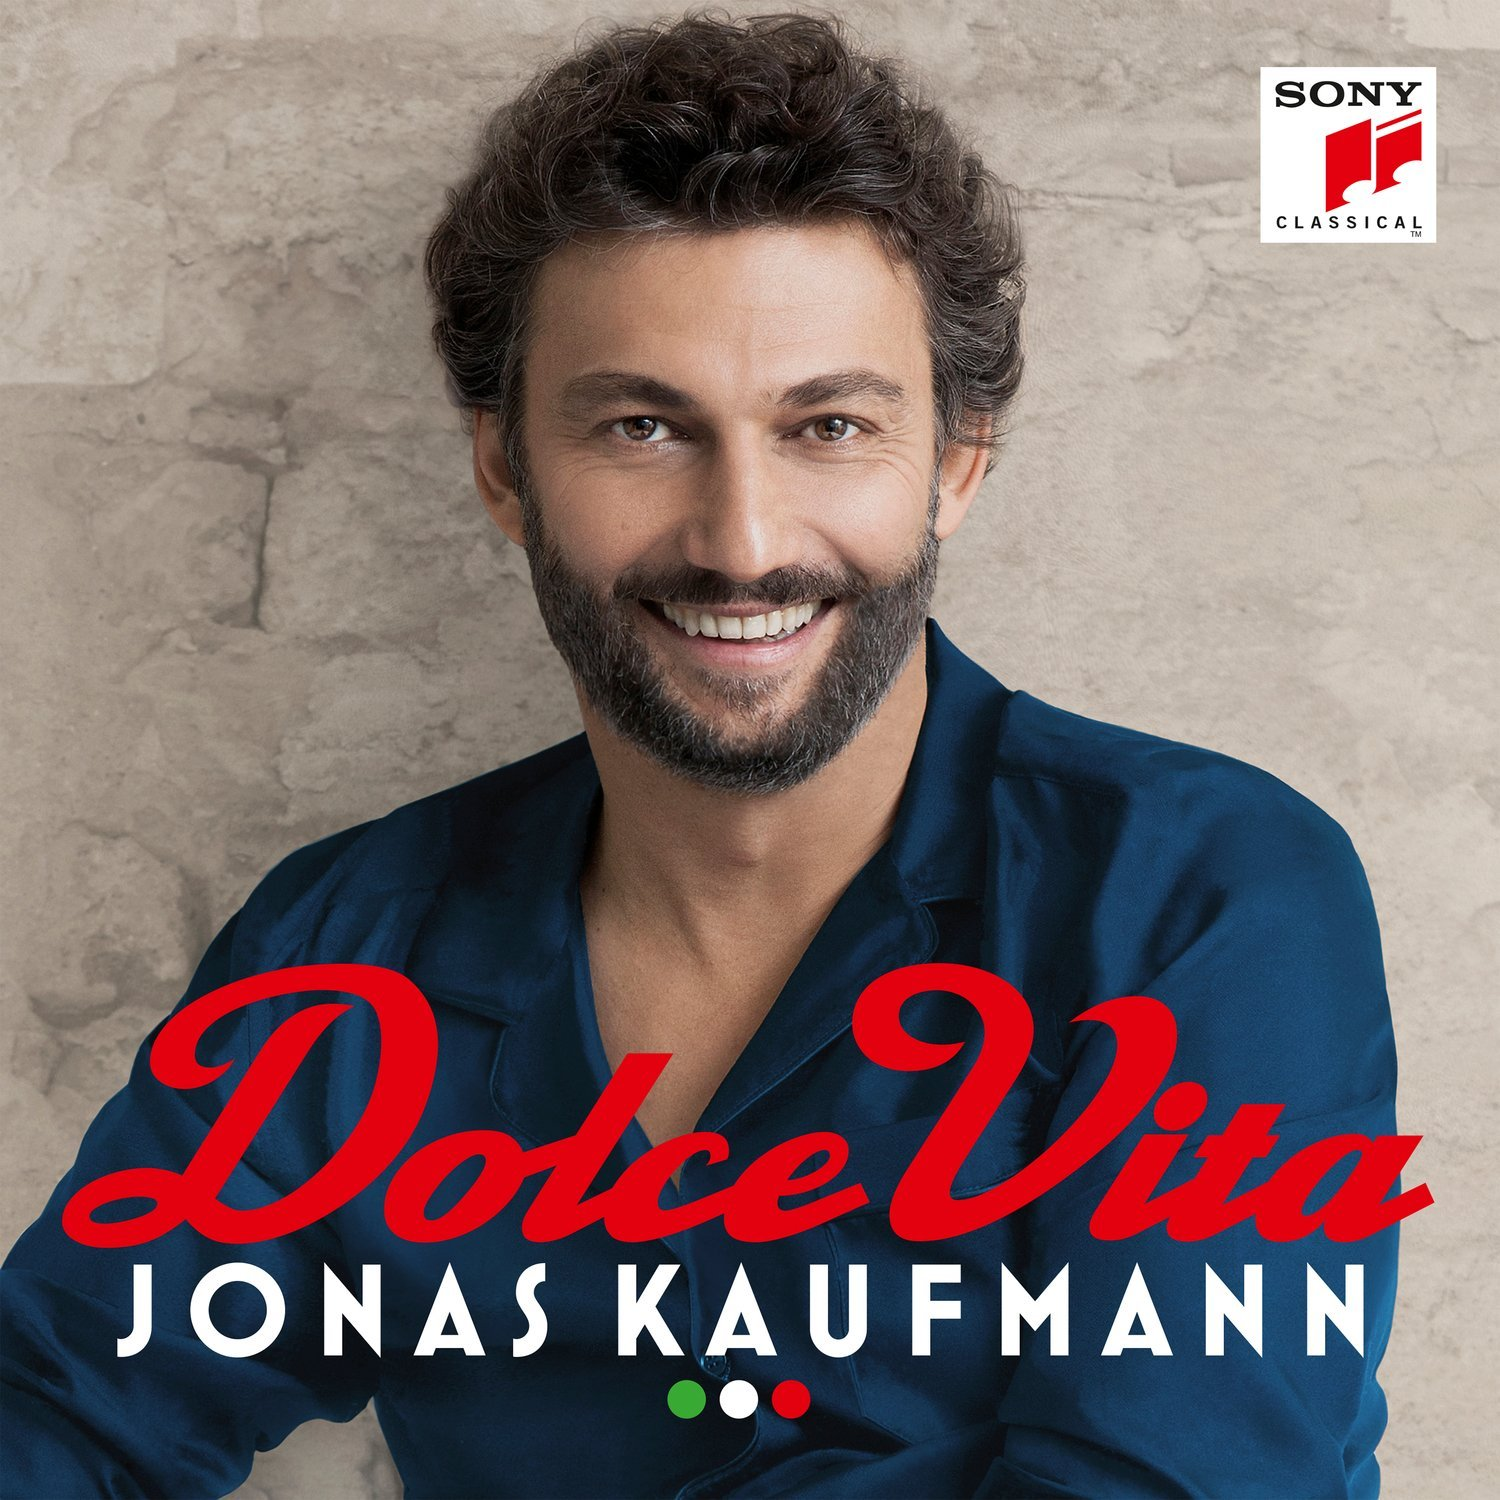 CD REVIEW: DOLCE VITA (Sony Classical 88875183632)